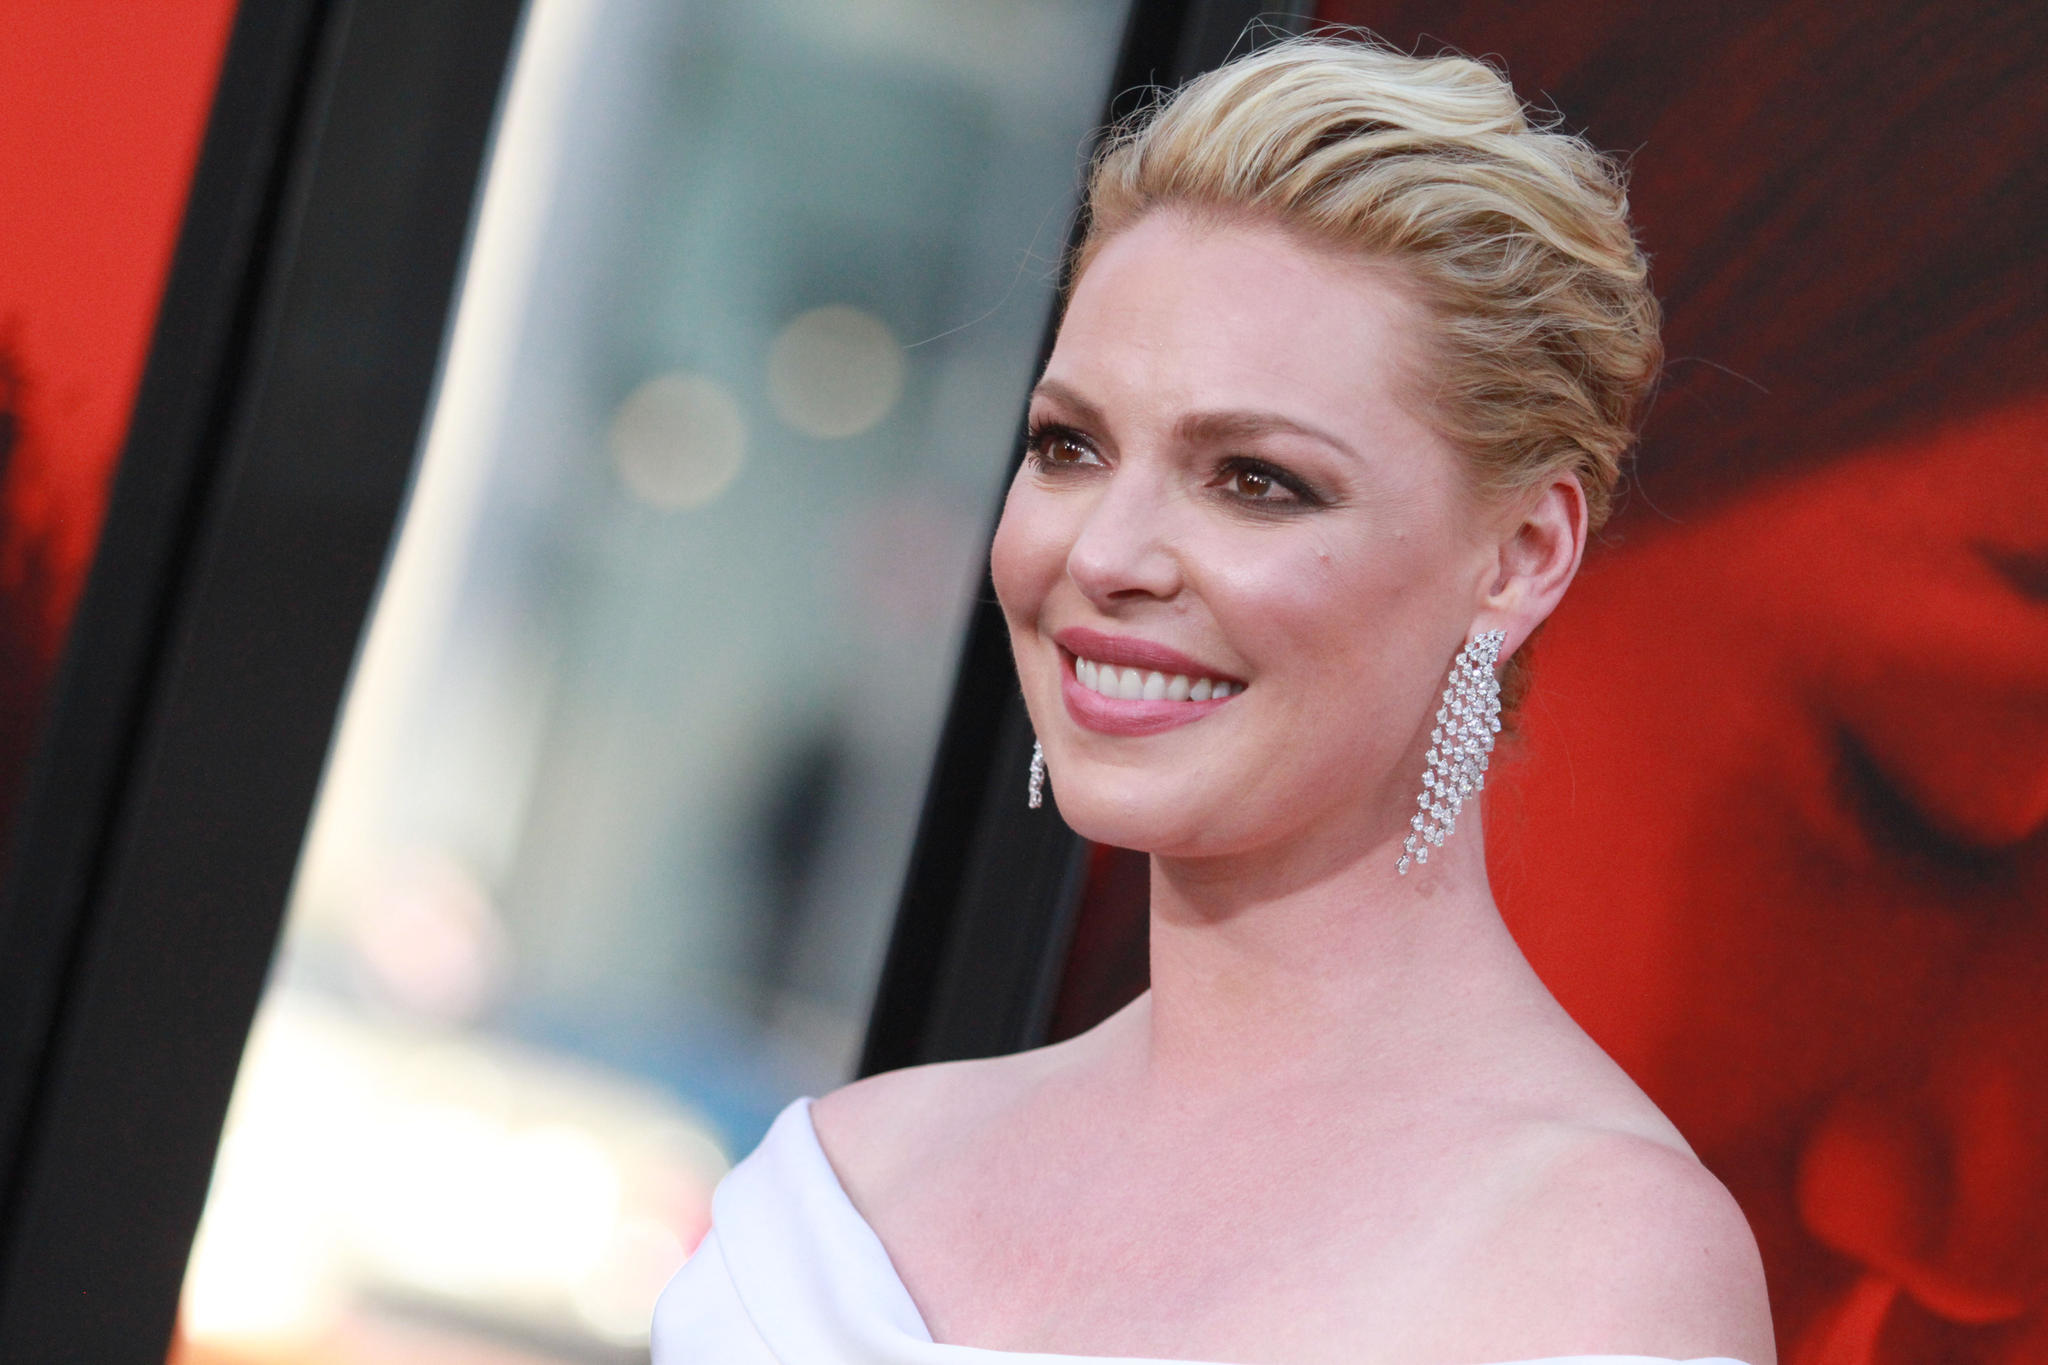 Katherine Heigl Just Posted Photos Of Her Amazing Weight-Loss Transformation Katherine Heigl Just Posted Photos Of Her Amazing Weight-Loss Transformation new photo